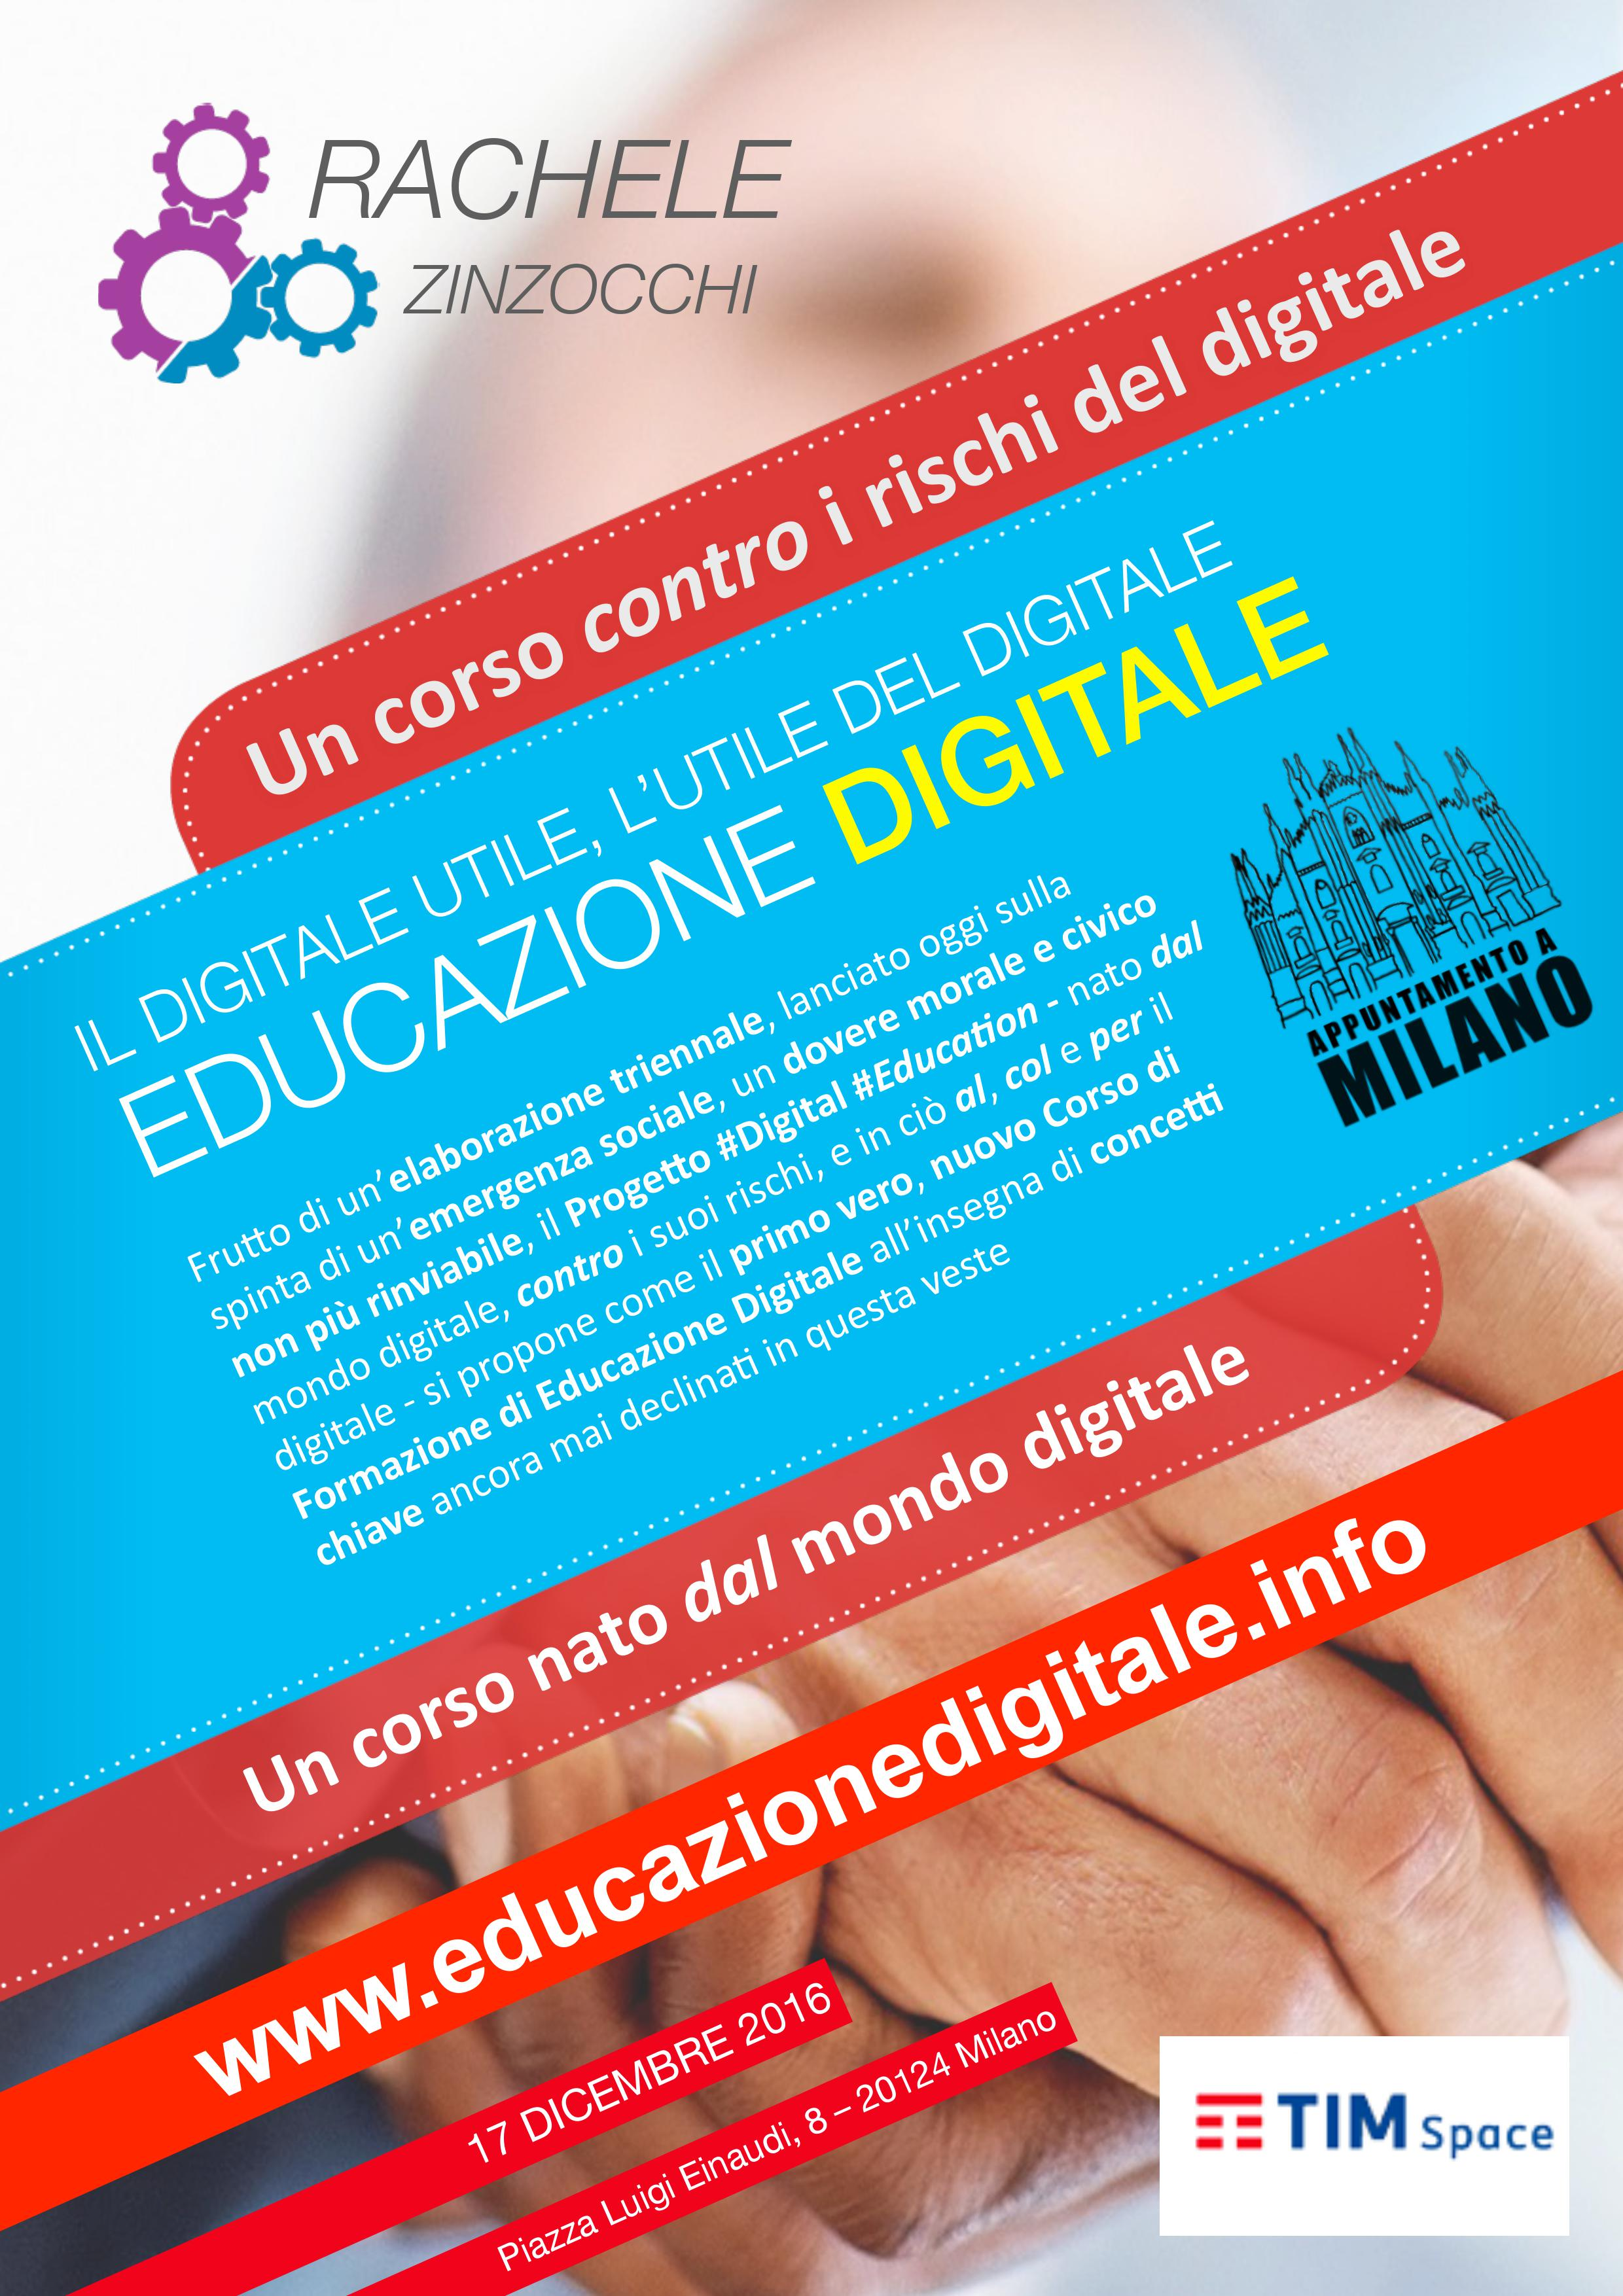 Digitale utile, utile del digitale: parte a Milano il progetto di Digital Education